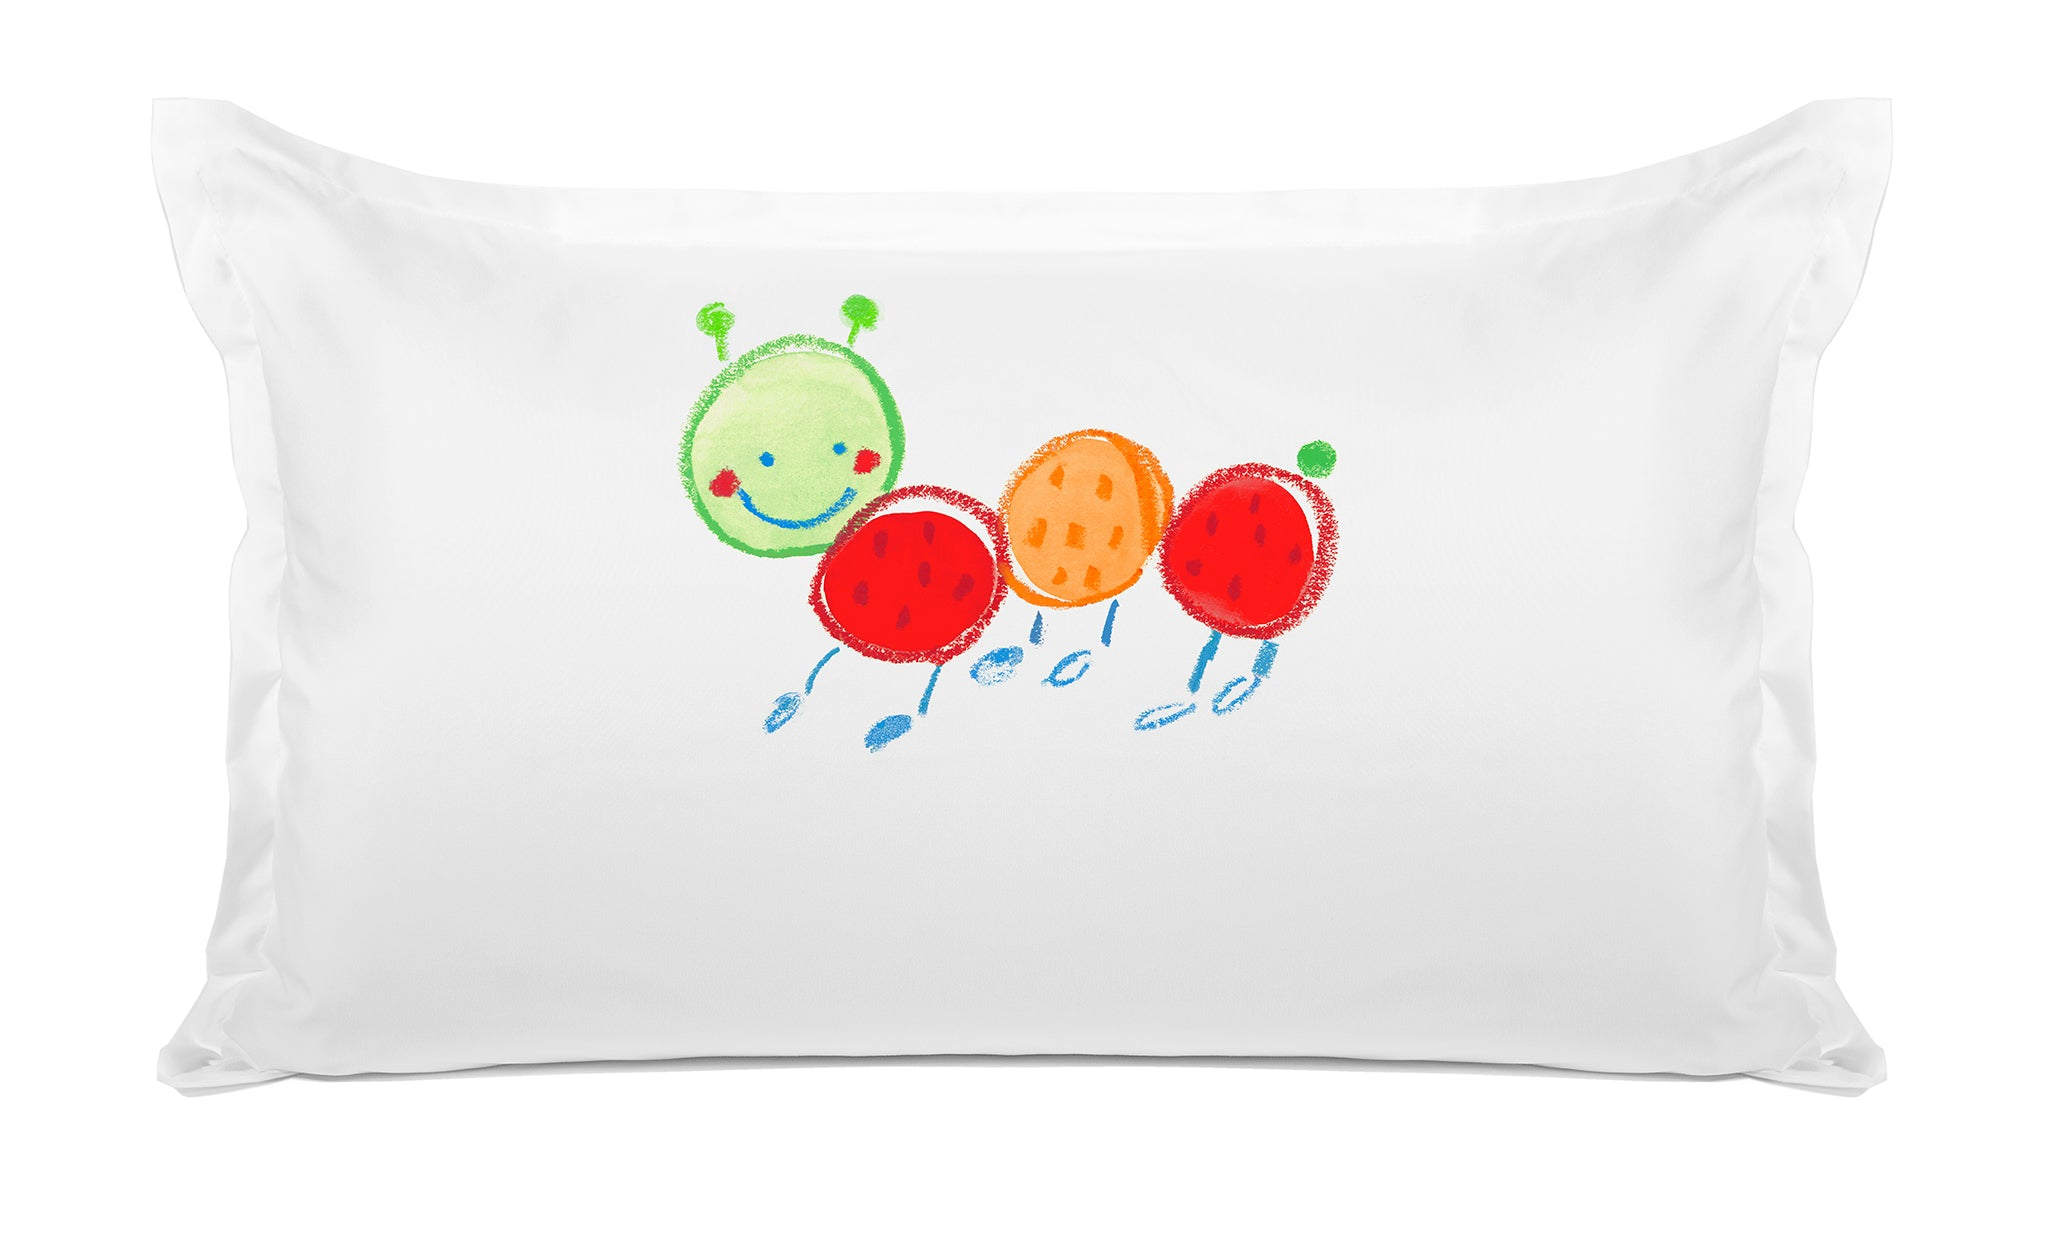 Fernando Caterpillar - Personalized Kids Pillowcase Collection-Di Lewis